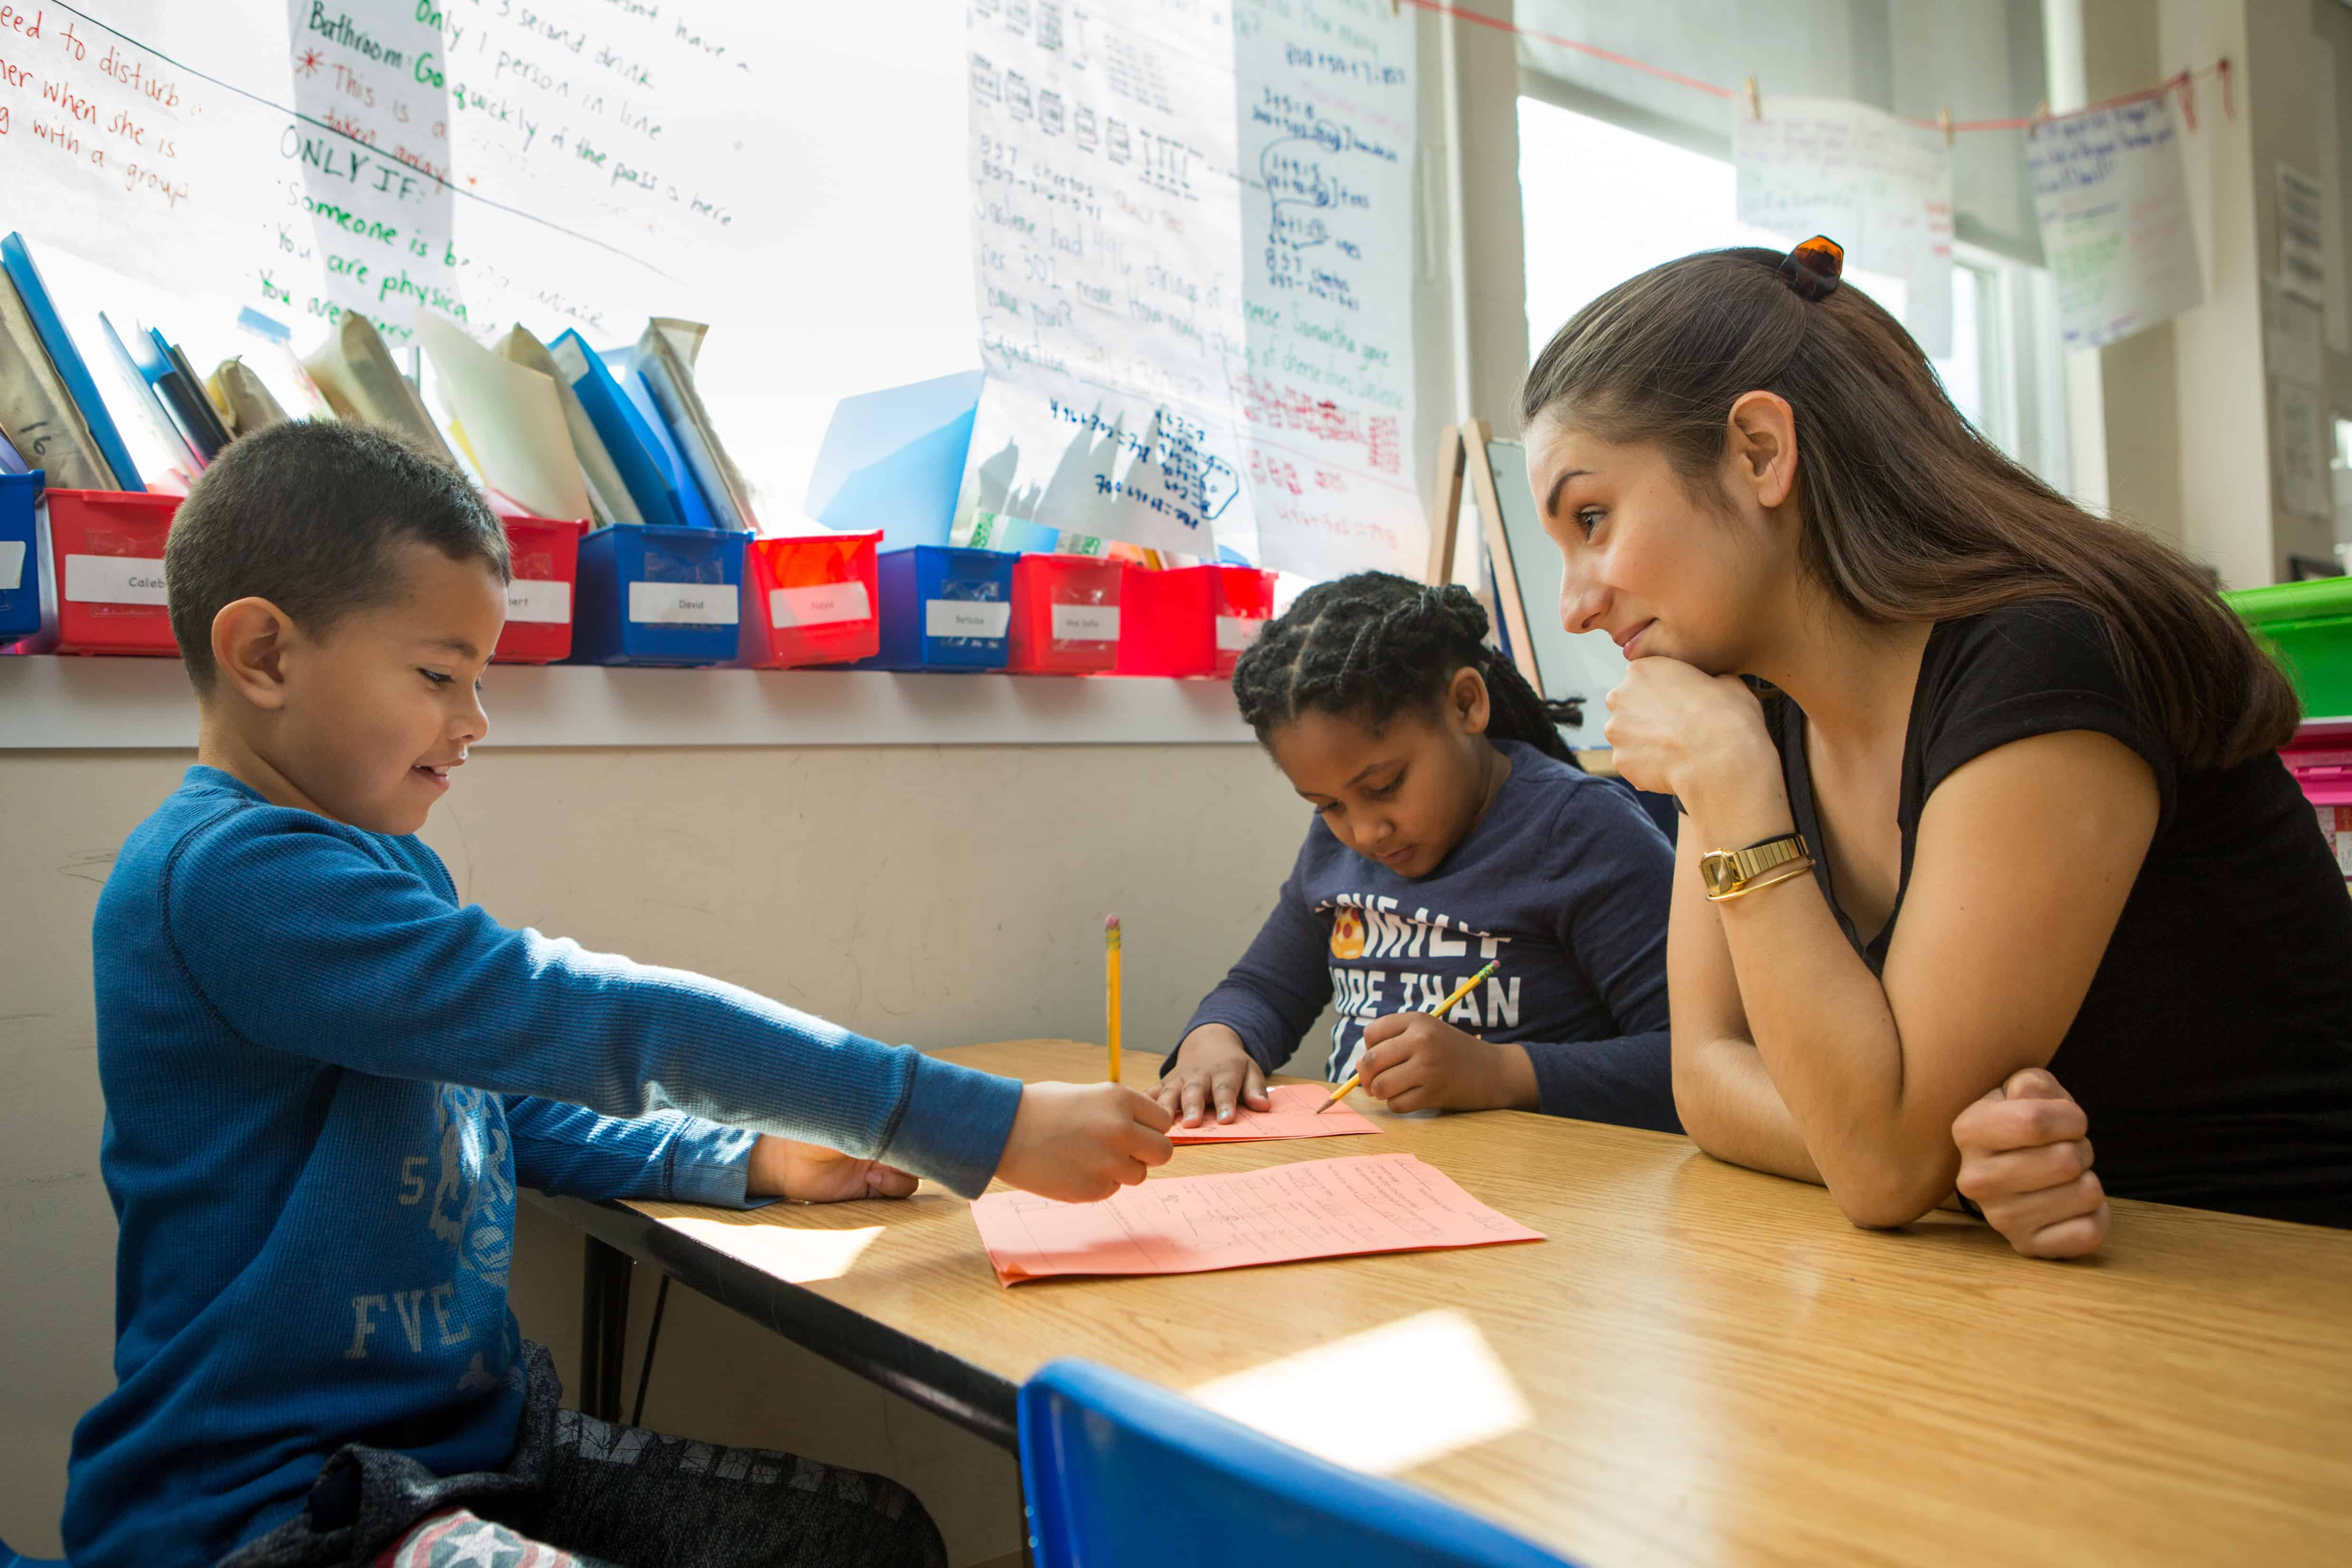 A teacher at Capital City PCS looks on as two students write